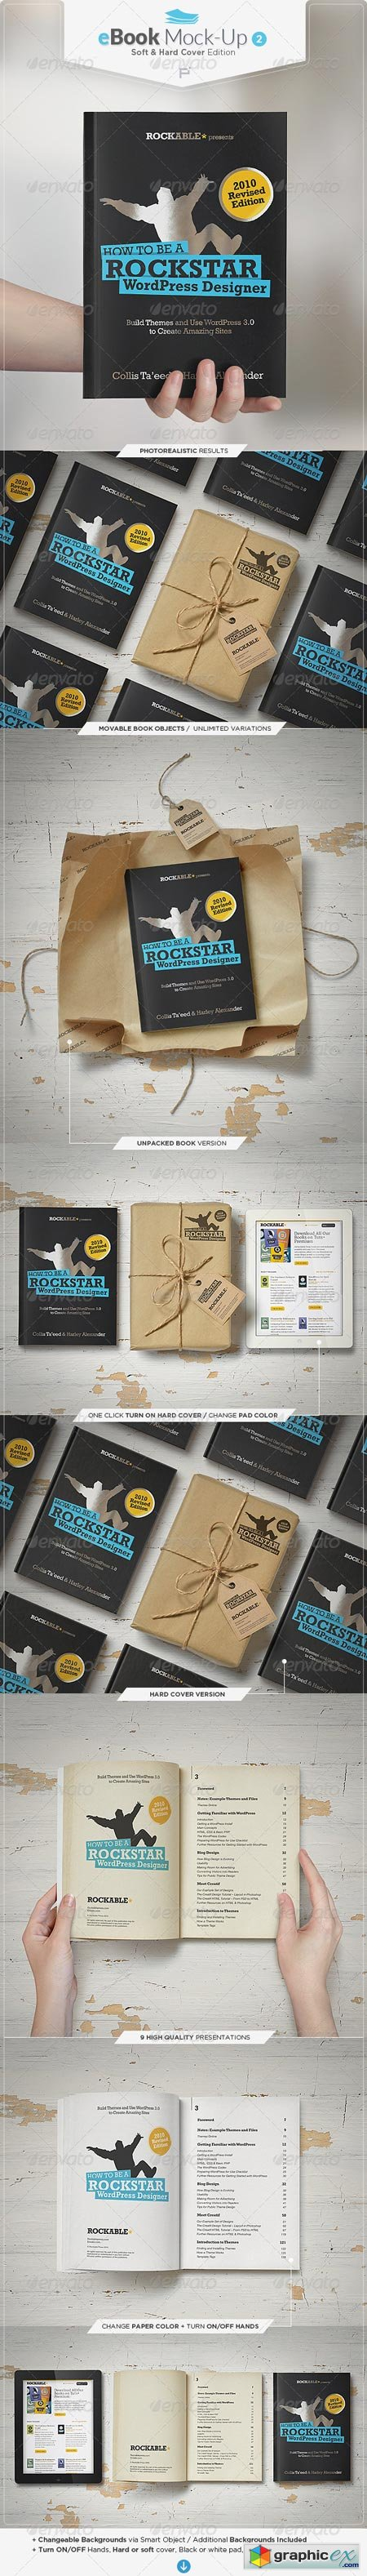 eBook Mock-Up Set 2 Soft & Hard Cover Edition 6887101